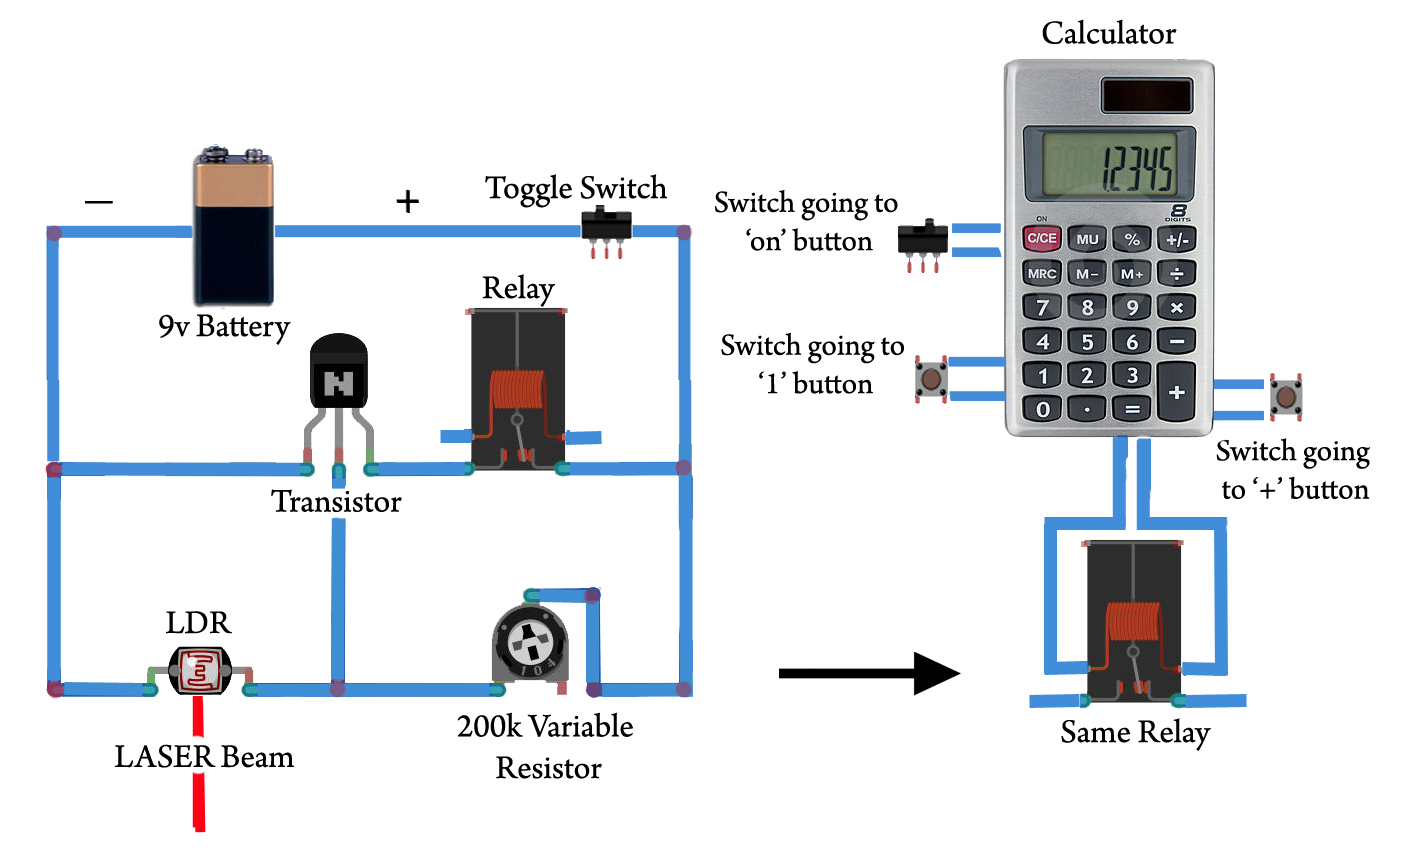 Wiring Diagram For Counter Libraries Circuit Binary Up 4026 Digital Calculator Third Levellogic Data Schema Board